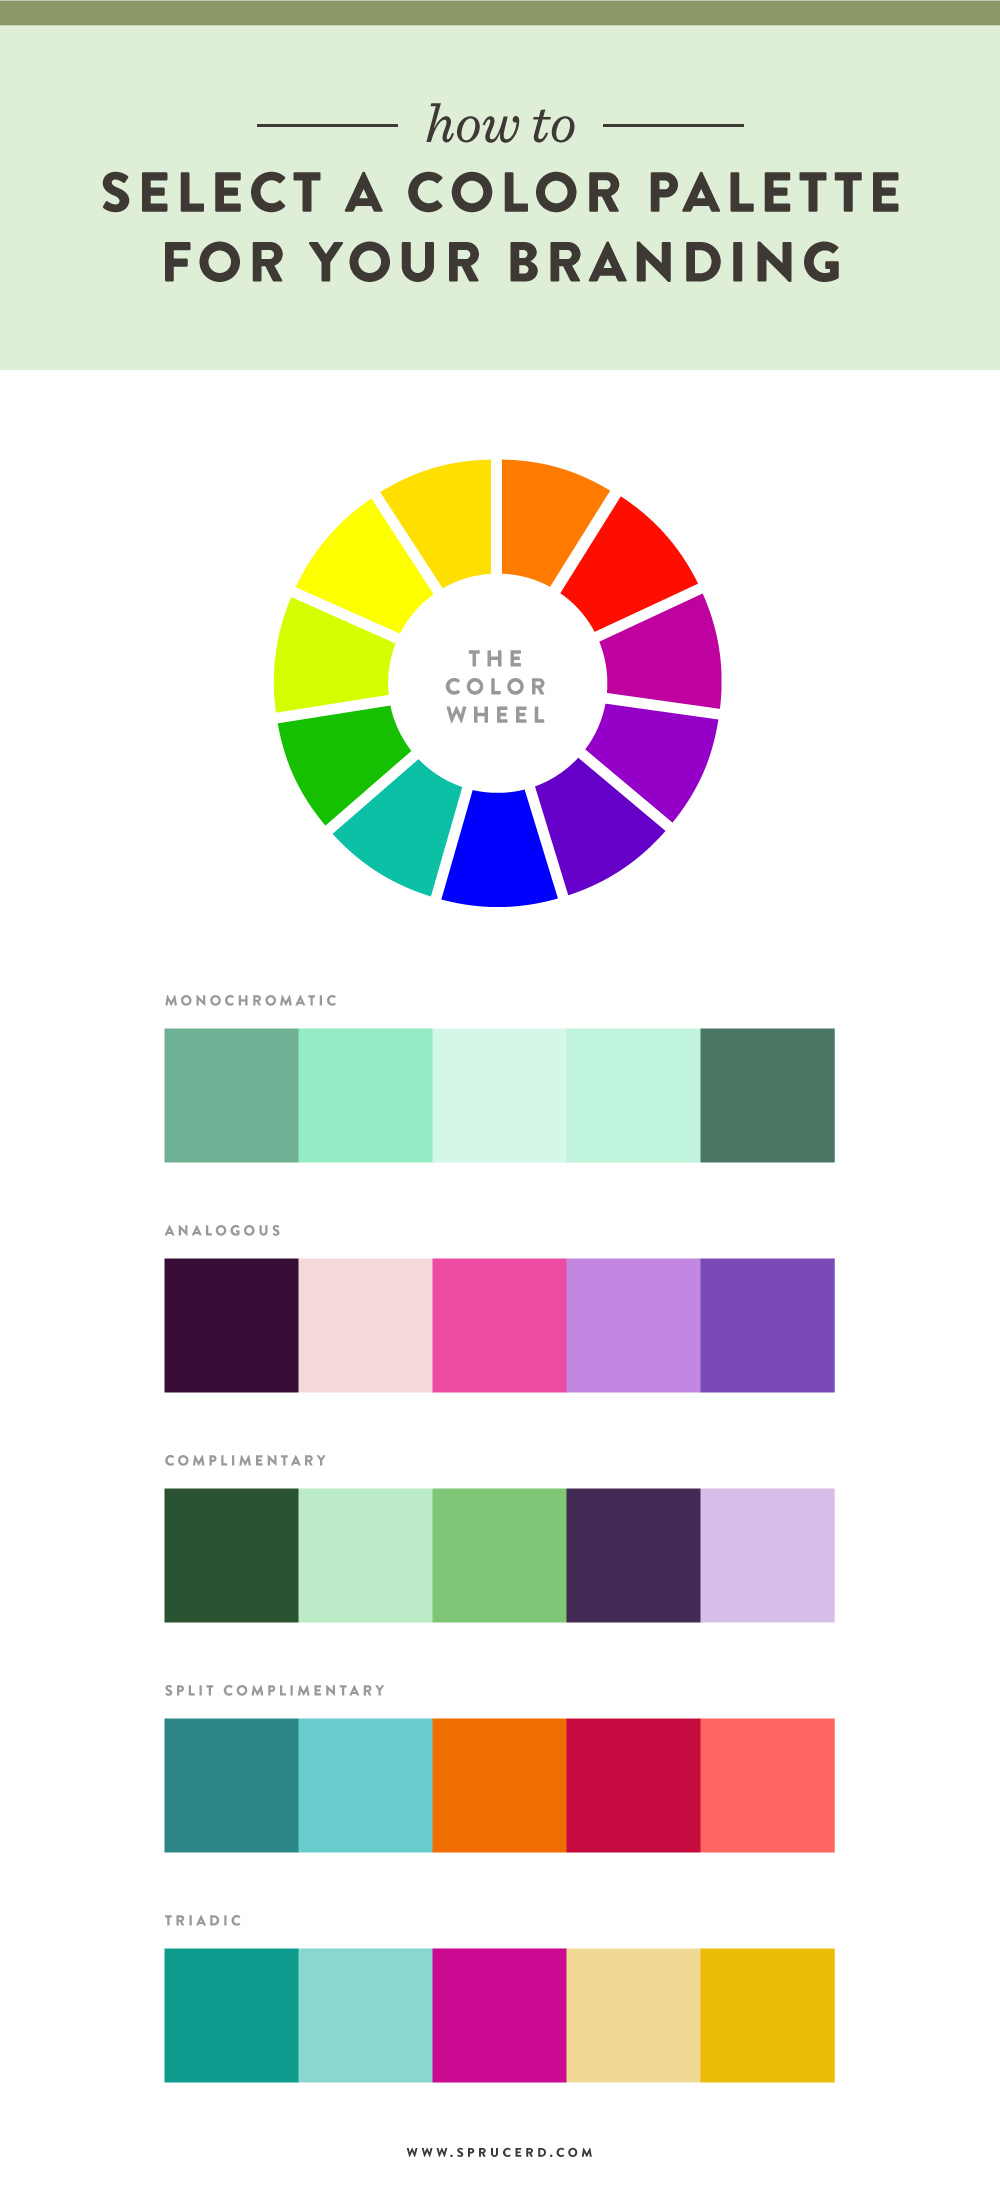 how to select a color palette for your branding  u2014 spruce rd